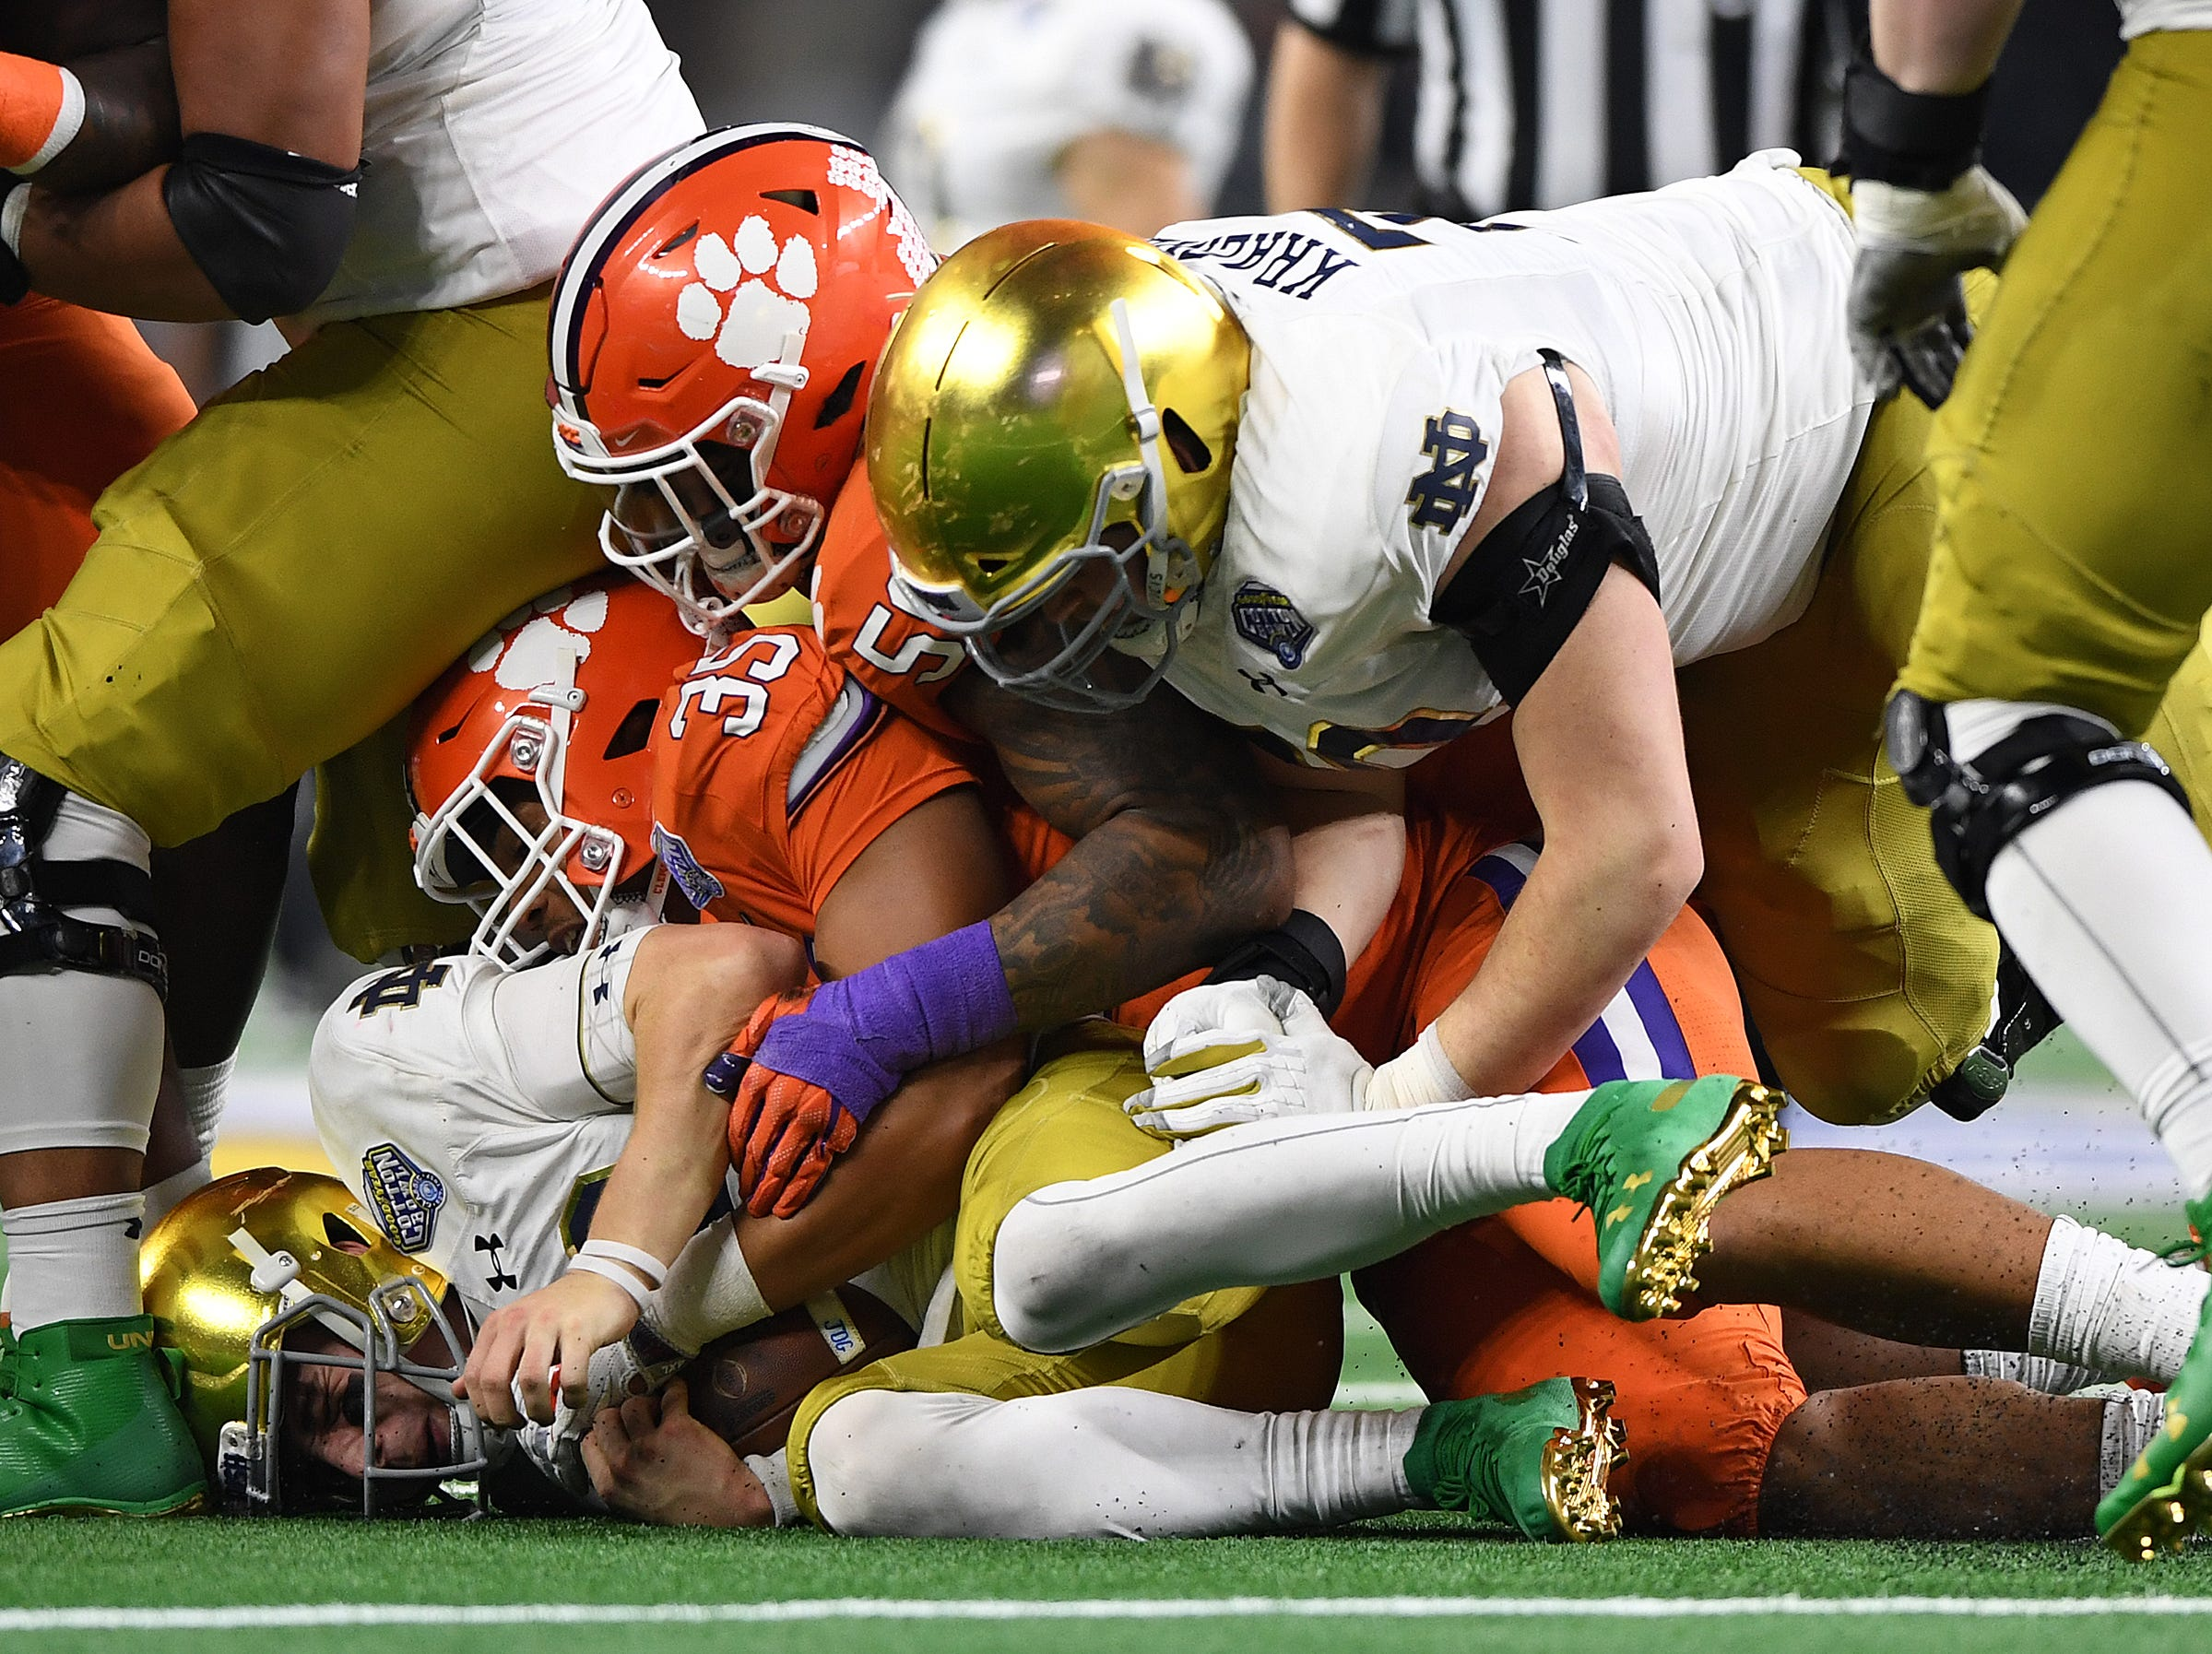 Clemson linebacker Justin Foster (35) brings down Notre Dame quarterback Ian Book (12) during the 4th quarter of the Goodyear Cotton Bowl at AT&T stadium in Arlington, TX Saturday, December 29, 2018.